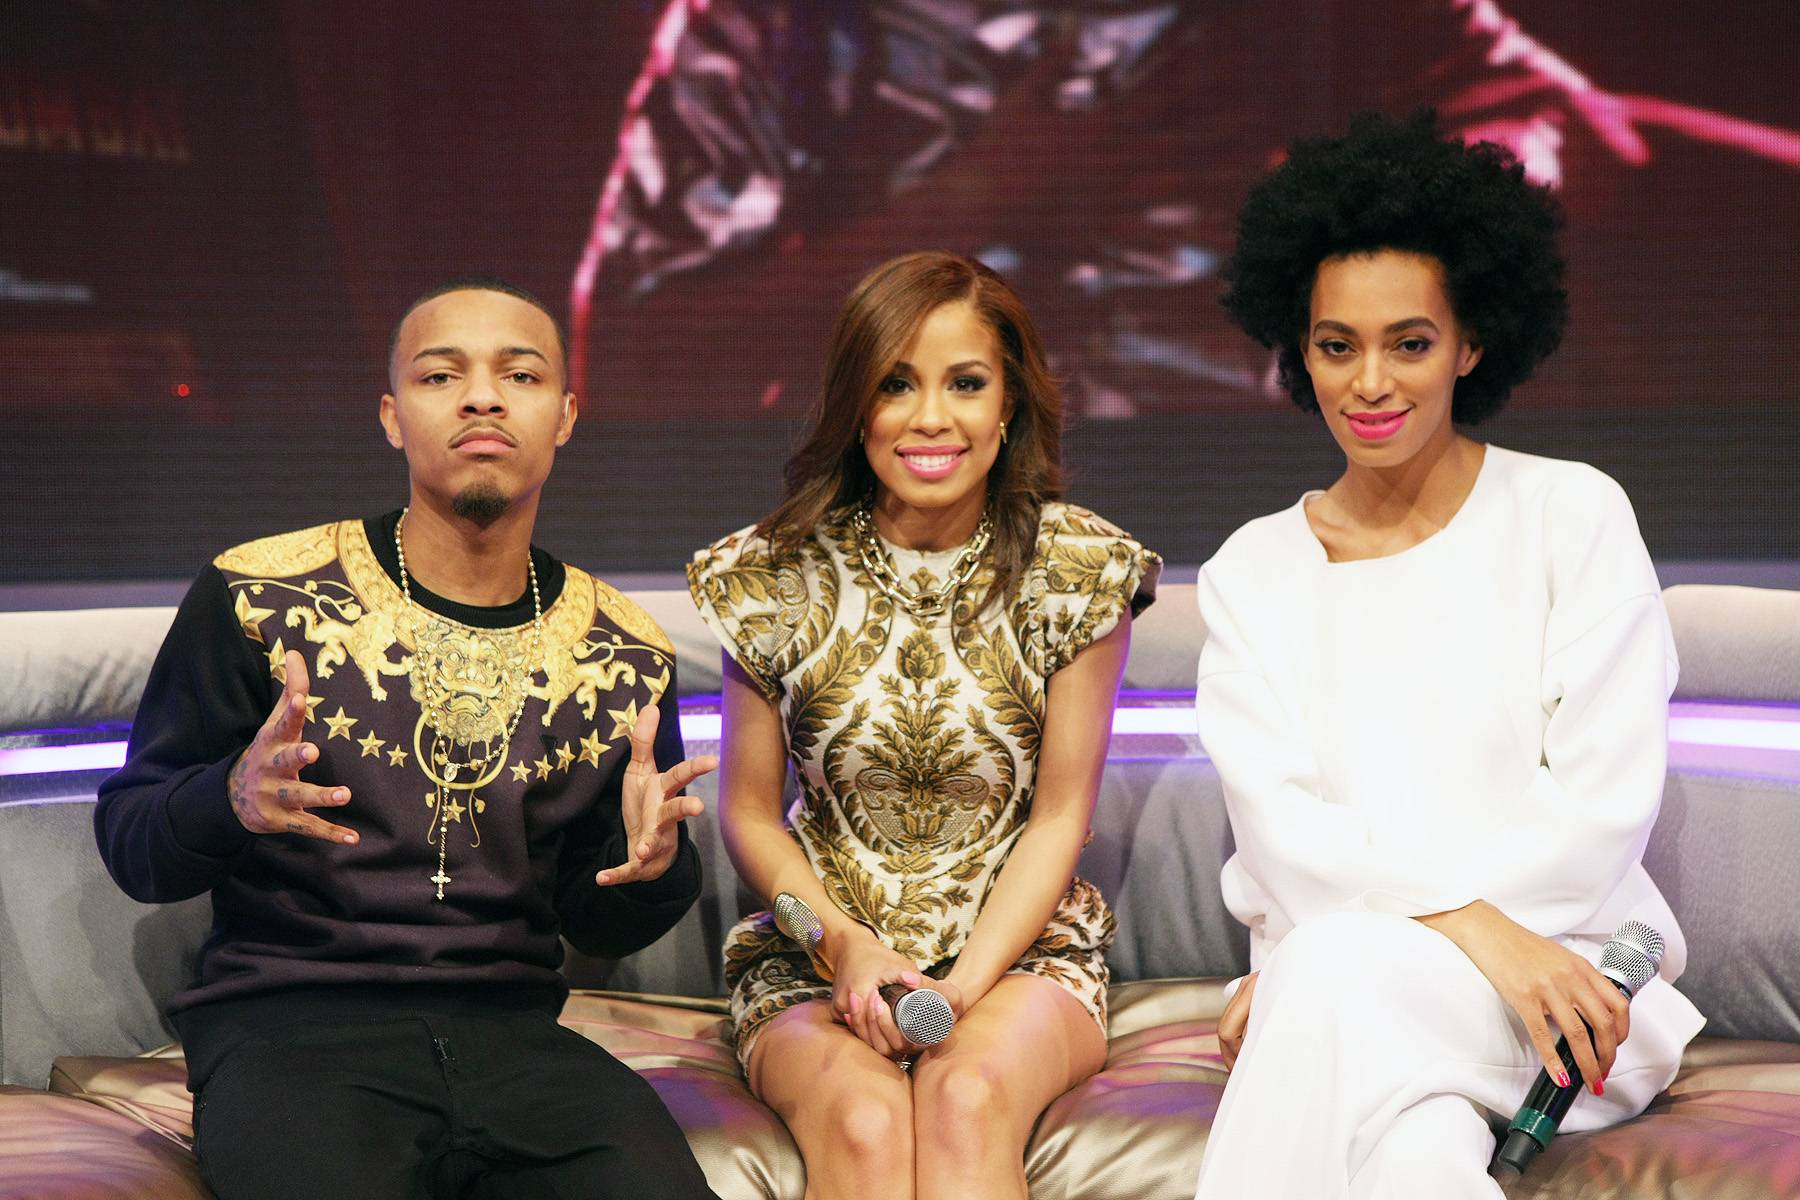 What Up? - Bow Wow, Keshia Chante and Solange Knowles chillax while on 106. (Photo: Bennett Raglin/BET/Getty Images for BET)